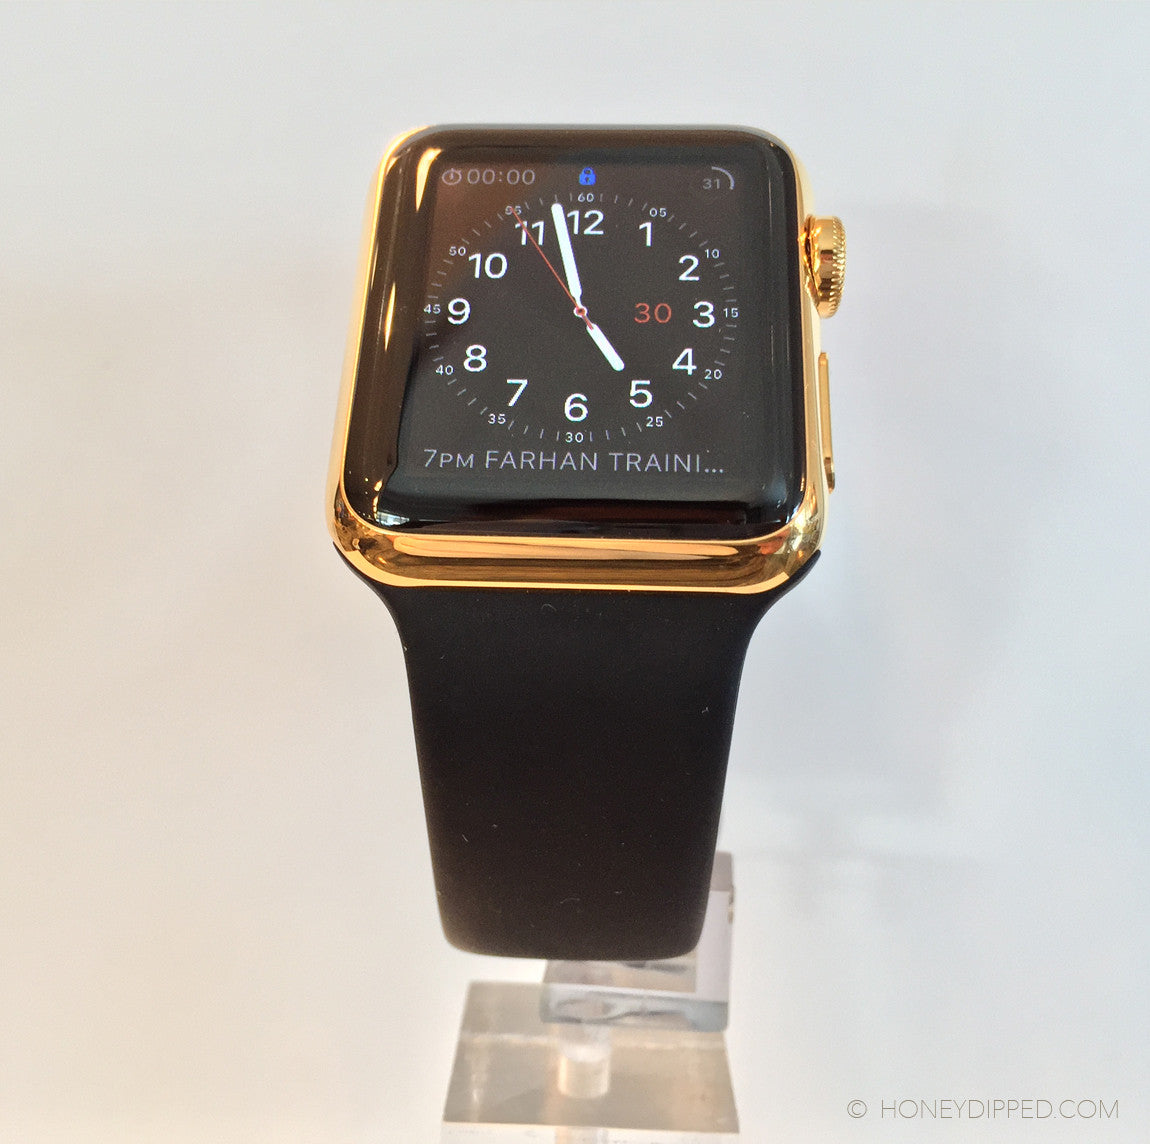 New 24K Gold Apple Watches in 38mm and 42mm